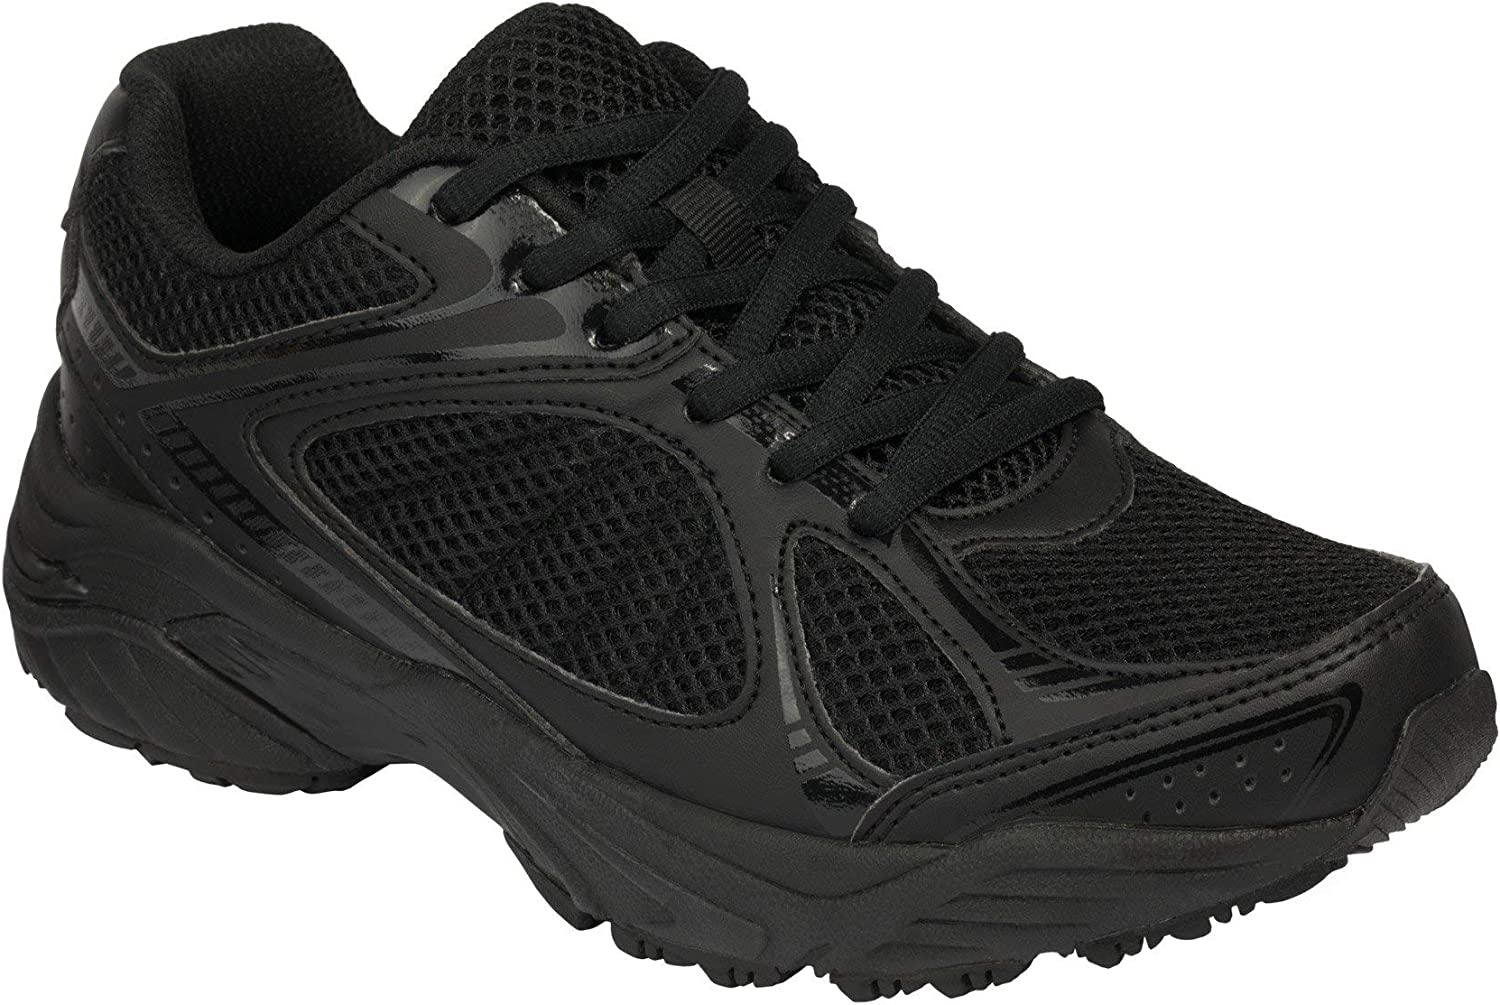 Scholl Deportivas New Sprinter Negro 37: Amazon.es: Zapatos y ...